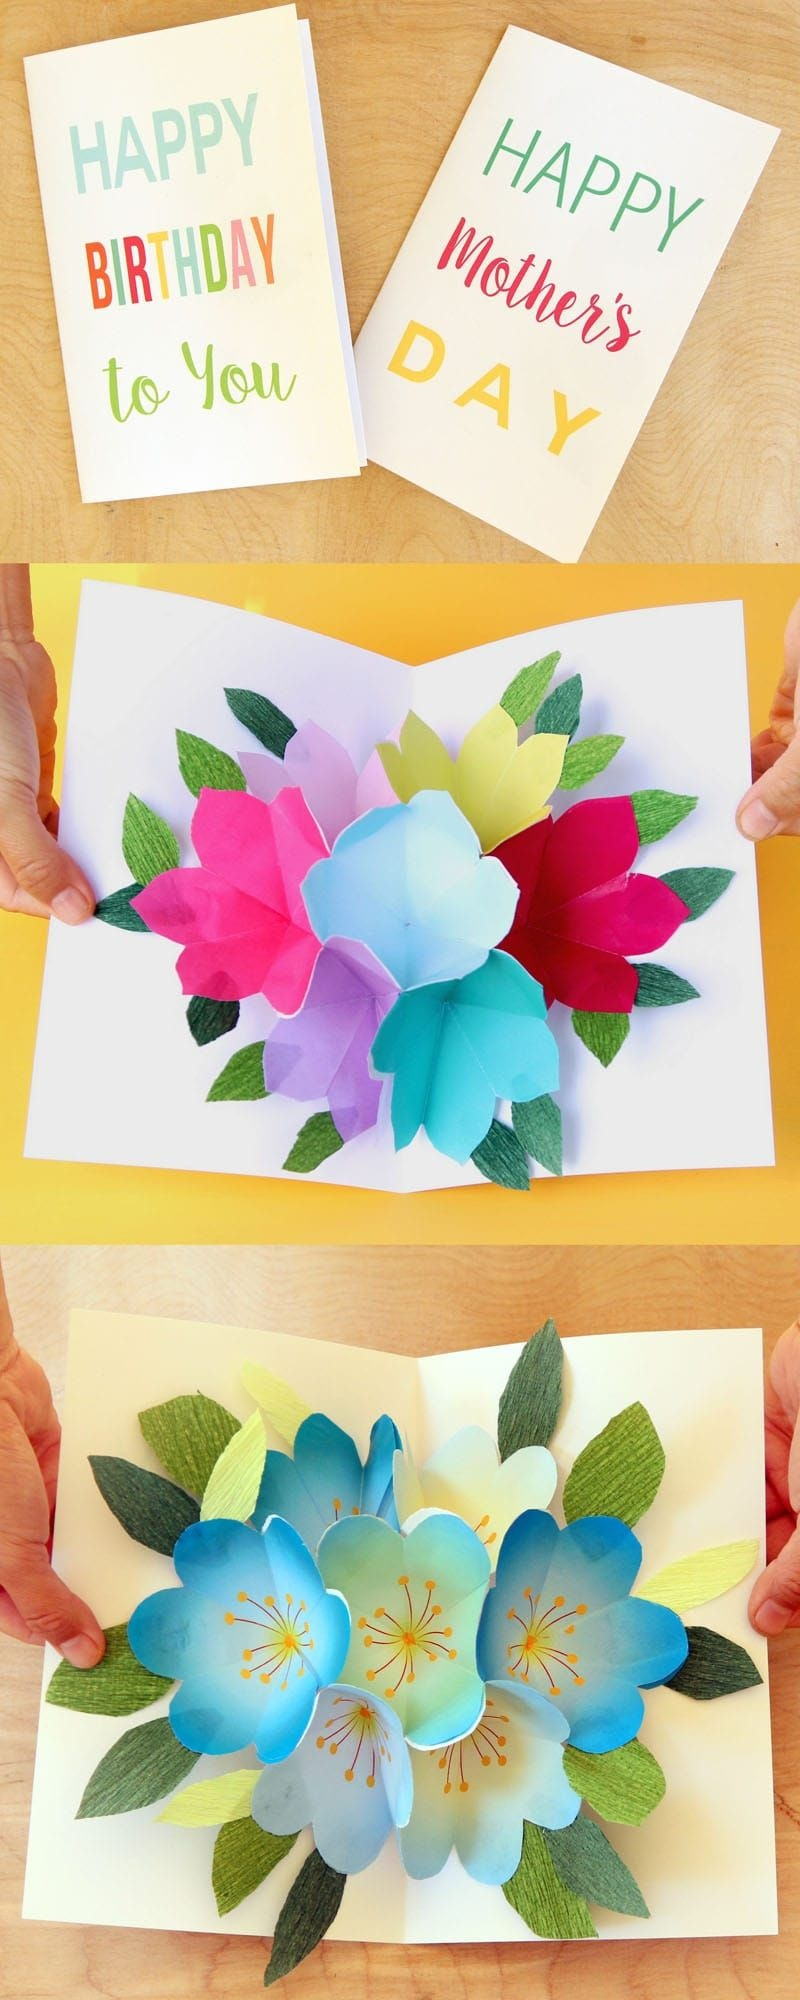 Free Printable Happy Birthday Card With Pop Up Bouquet | Printables - Free Printable Pop Up Birthday Card Templates